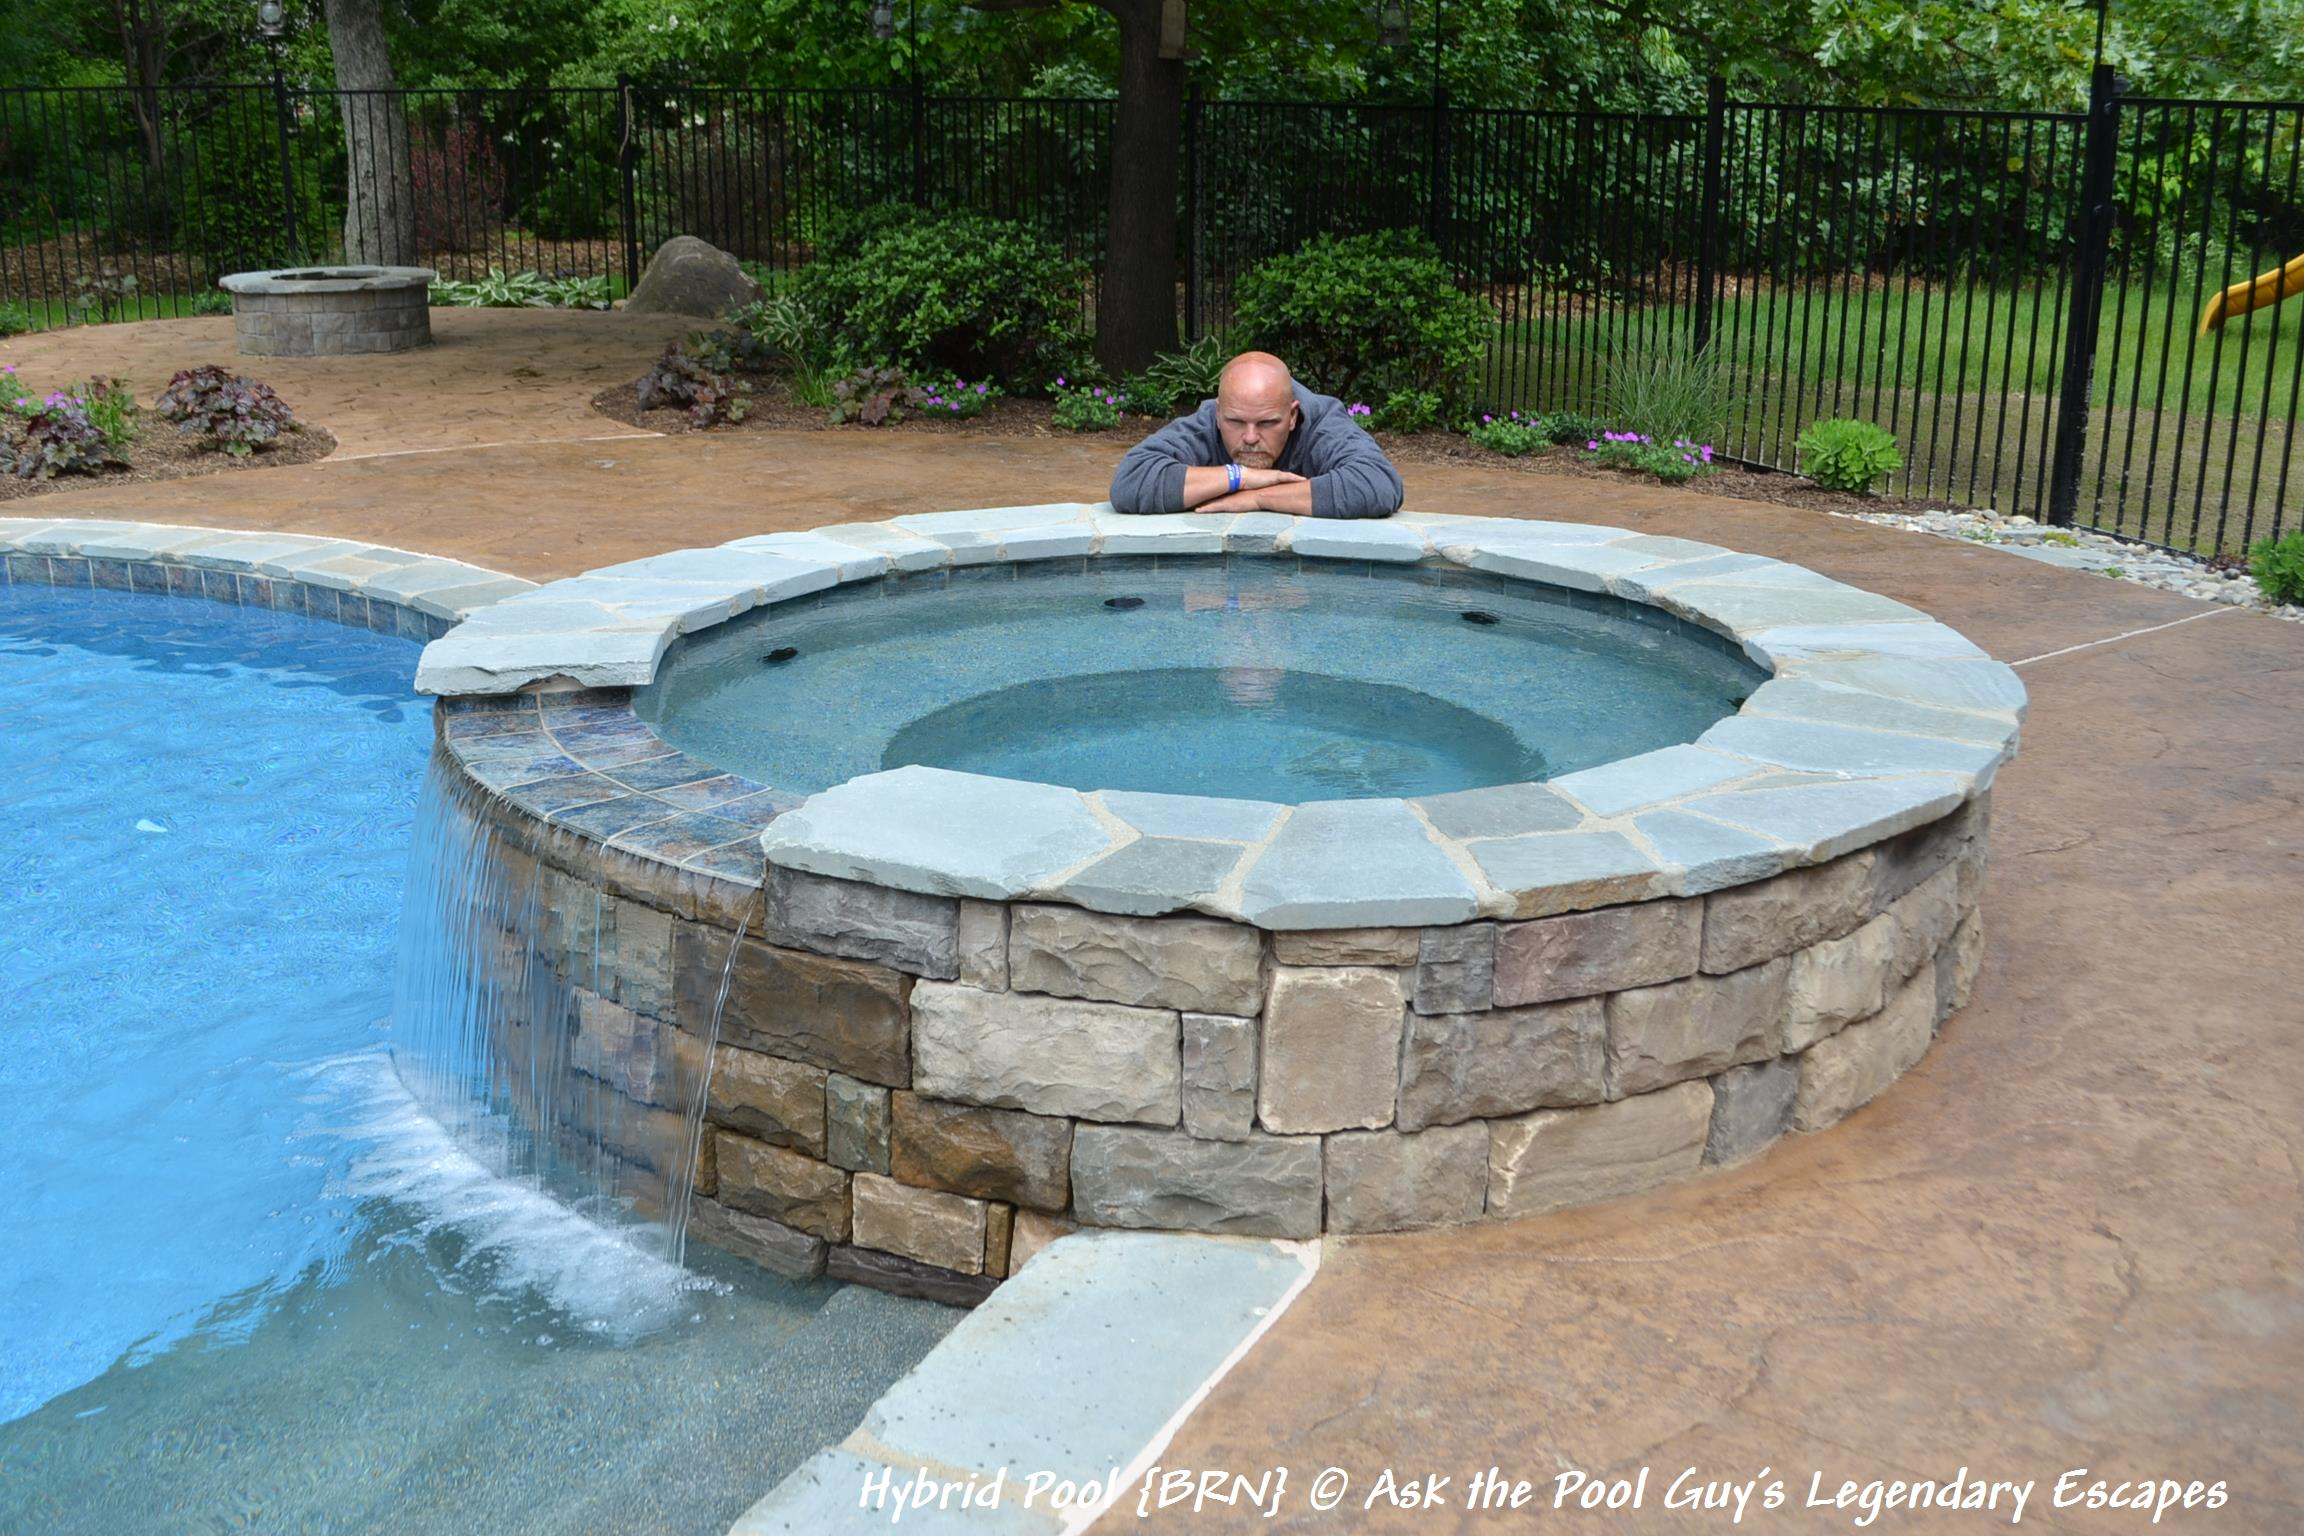 Pool Design And Build: Al Curtis, Legendary Escapes Resident Ask The Pool  Guy, Landscape By Naturally, Jodi